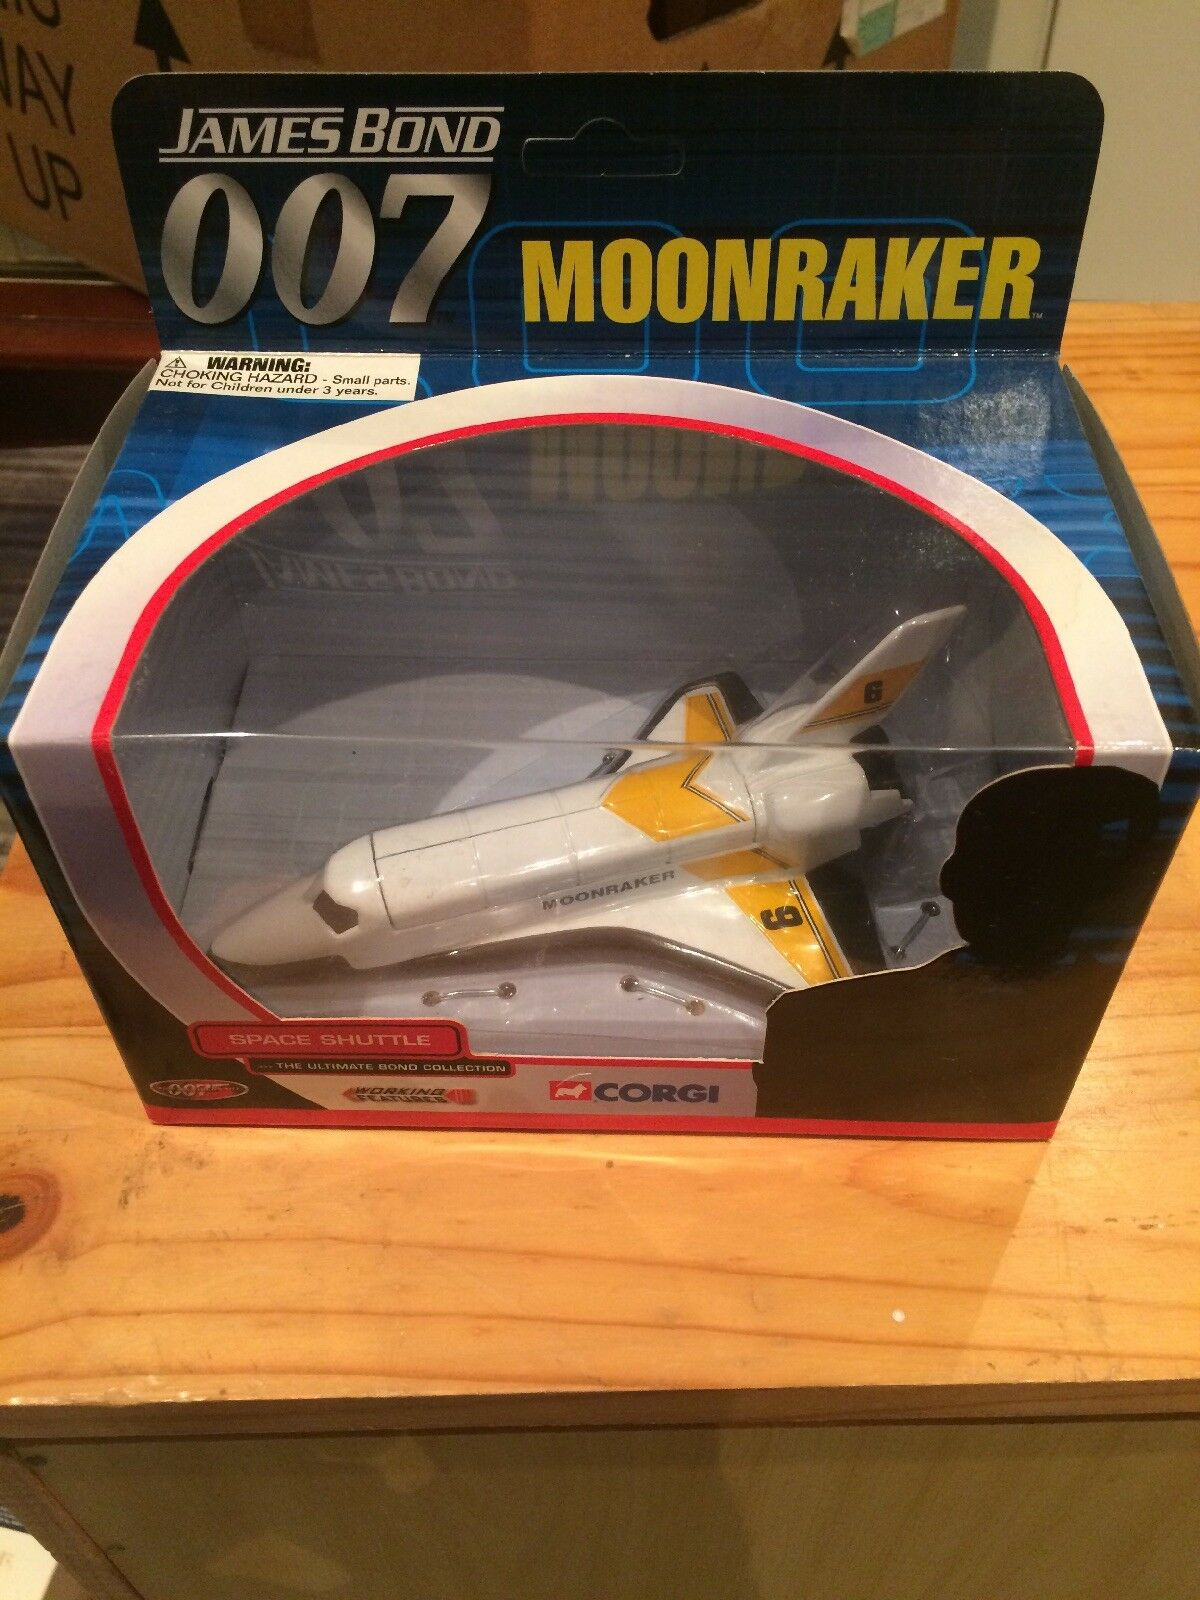 CORGI JAMES BOND 007 SPACE SHUTTLE MOONRAKER TY04002